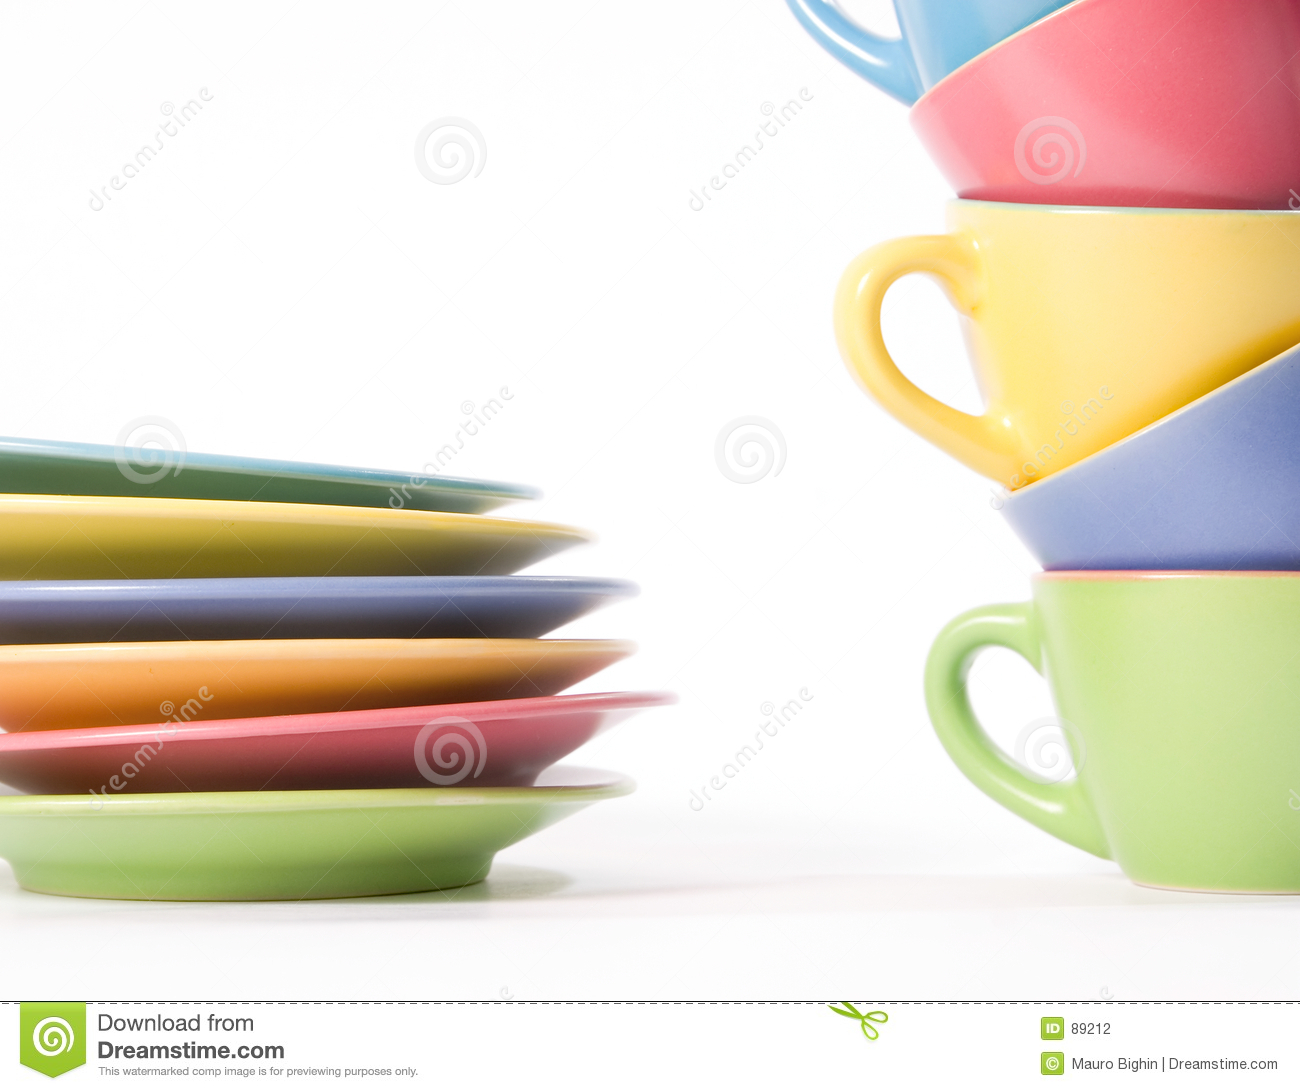 Colored coffee cups and dishes